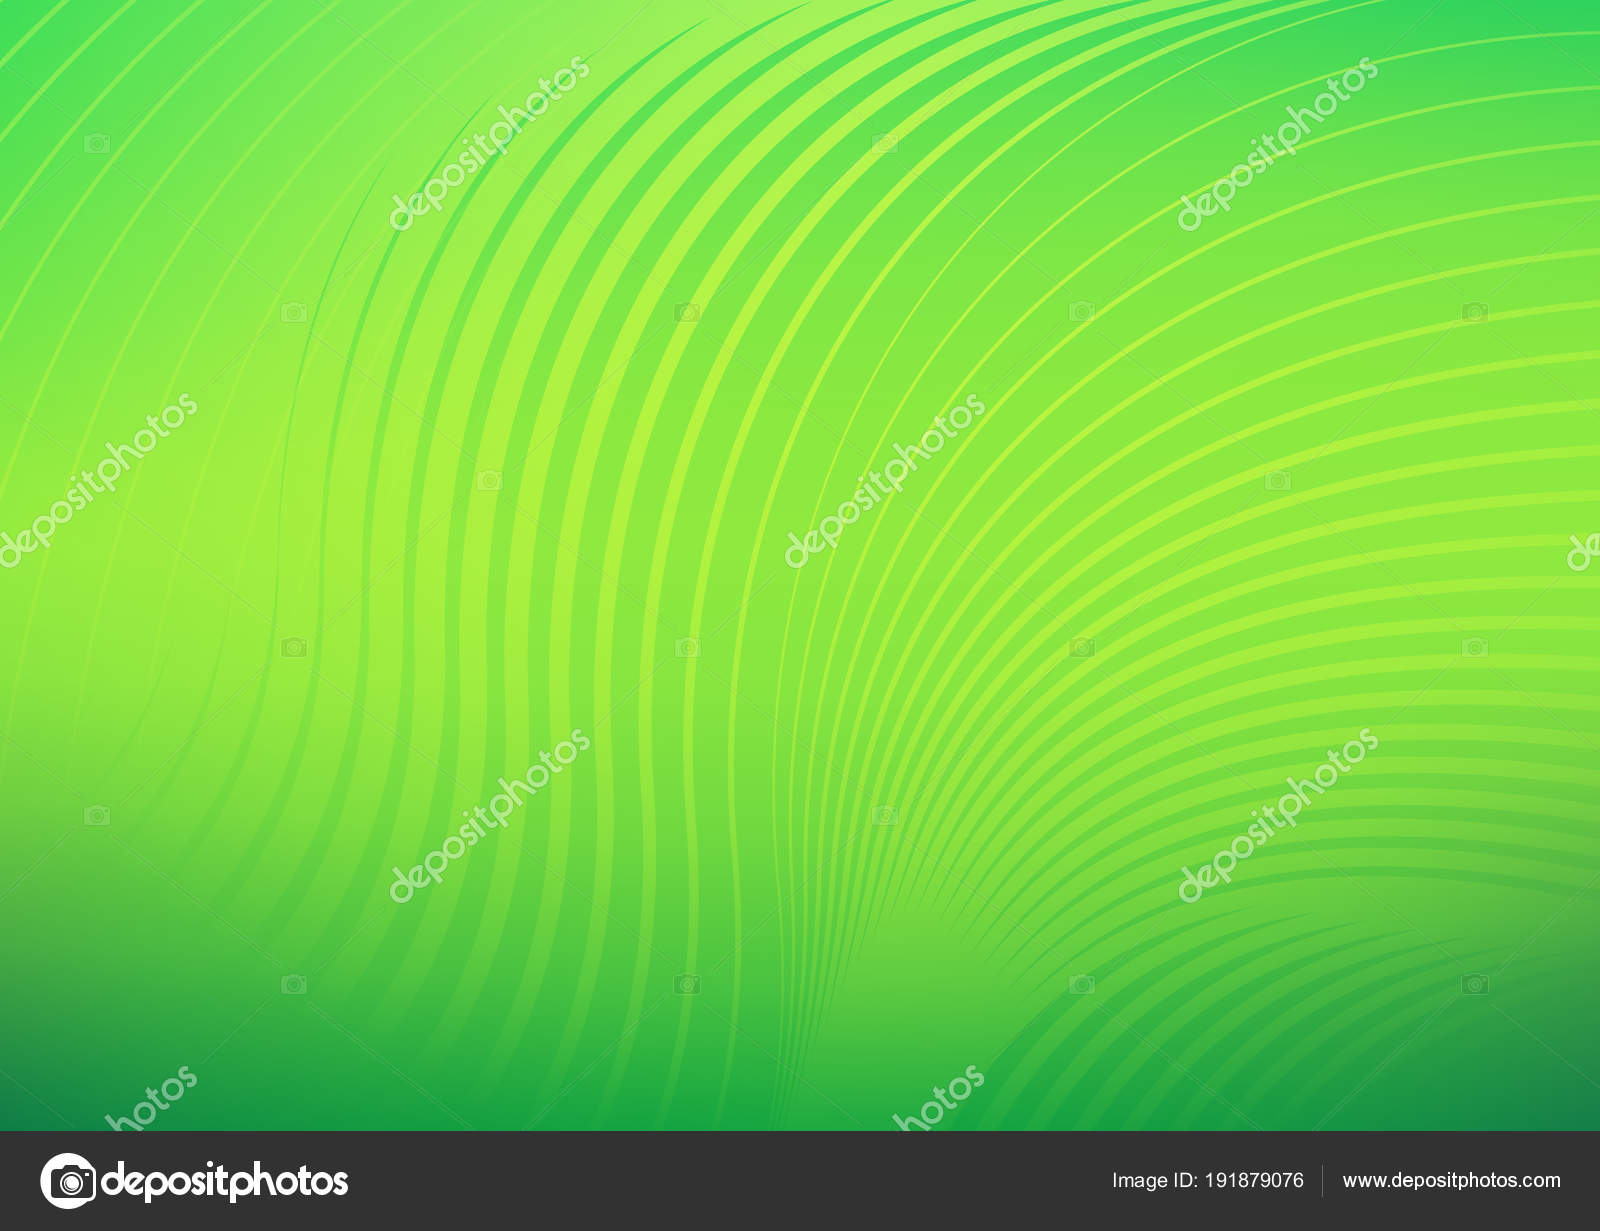 vector abstract background green color computer program 2176229 hd wallpaper backgrounds download vector abstract background green color